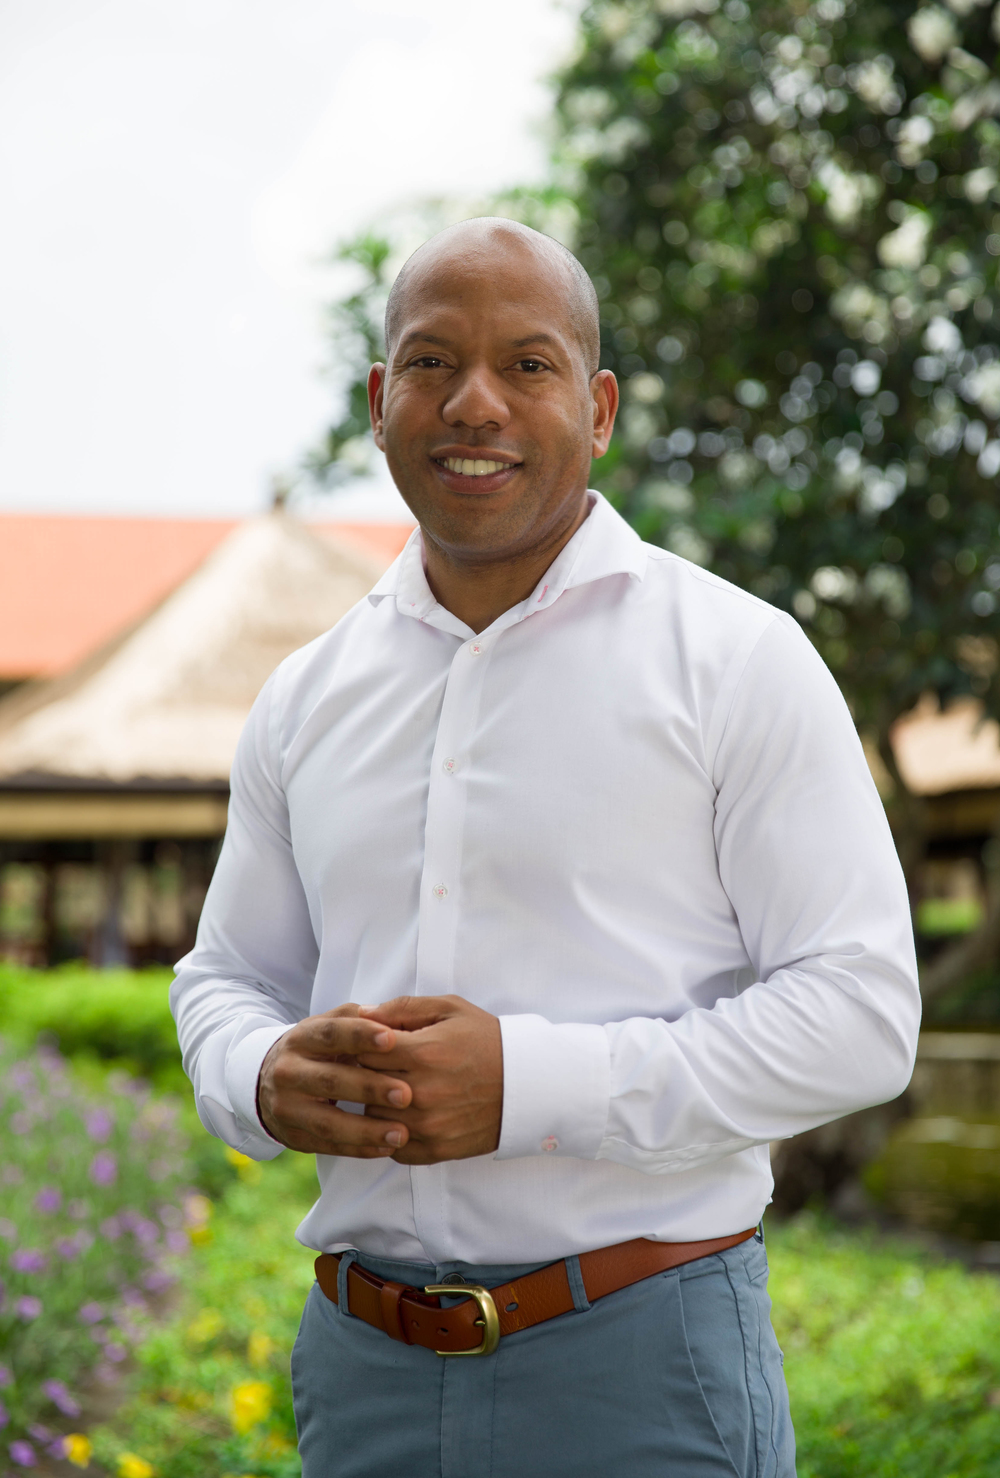 Clive Edwards, General Manager - The AYANA Resort & Spa, The Villas at AYANA and Rimba Jimbaran Hotel